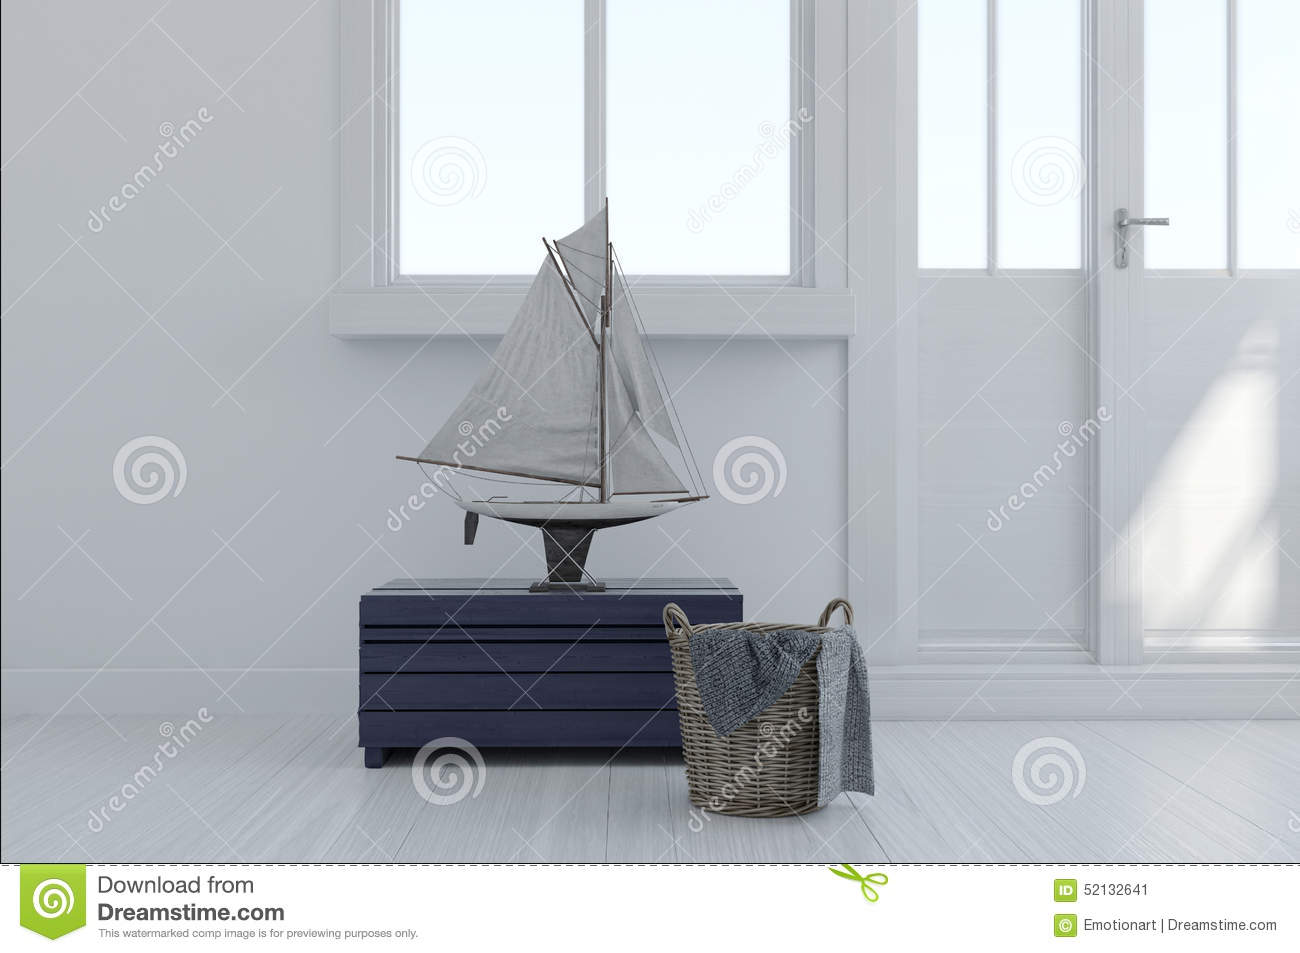 Nautical Themed Interior Decor Stock Illustration